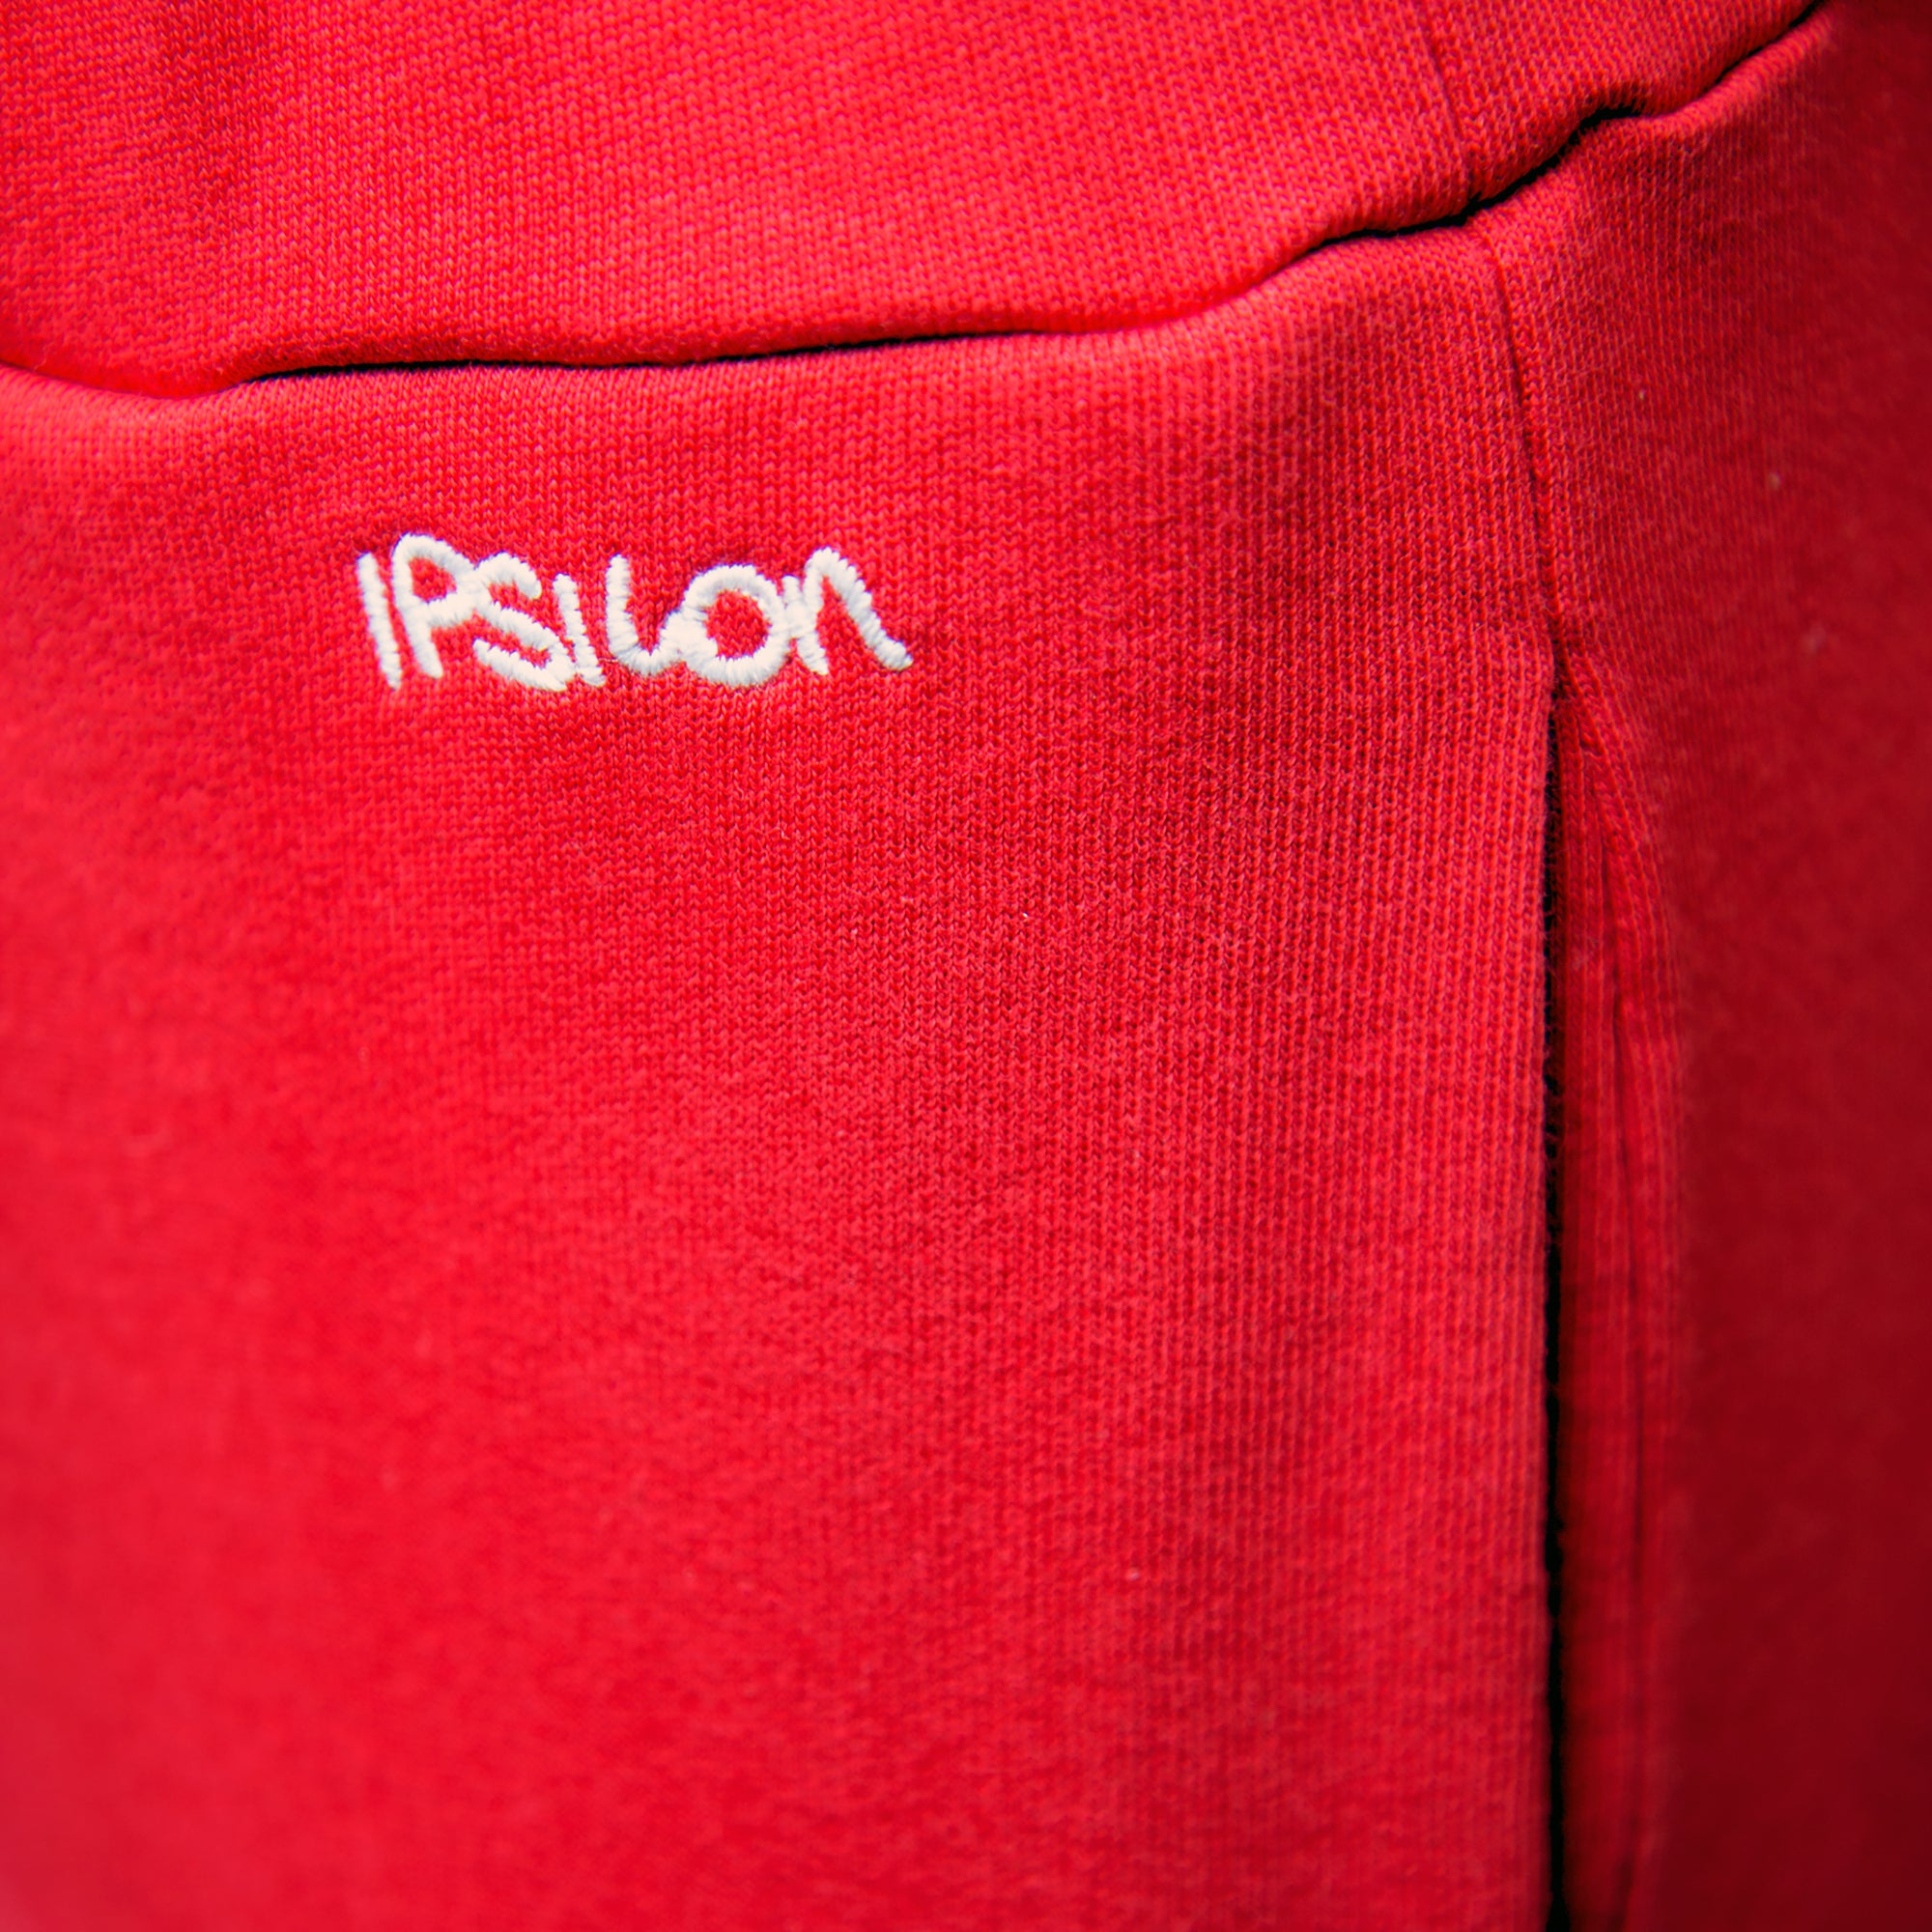 IPSILON LOGO PANTS